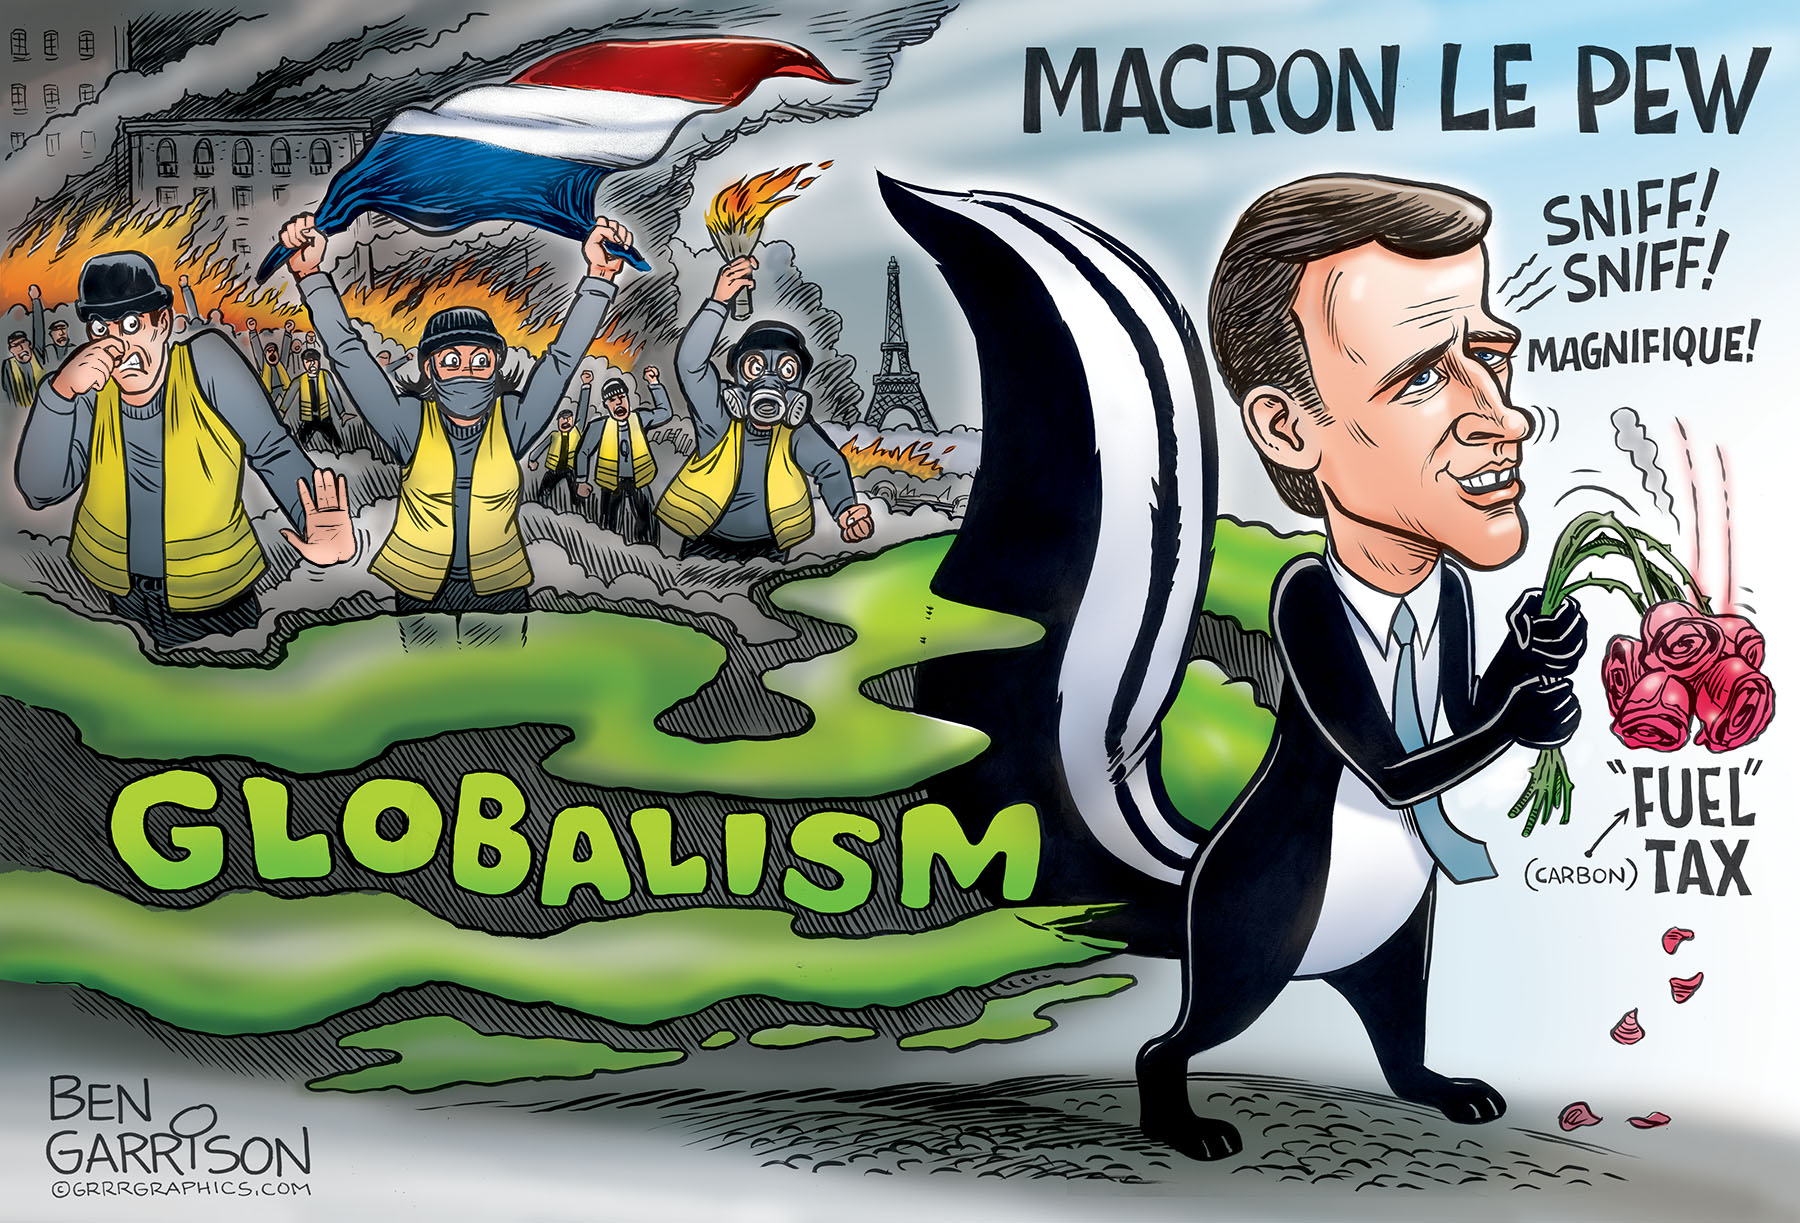 macron_globalist_skunk_cartoon.jpg